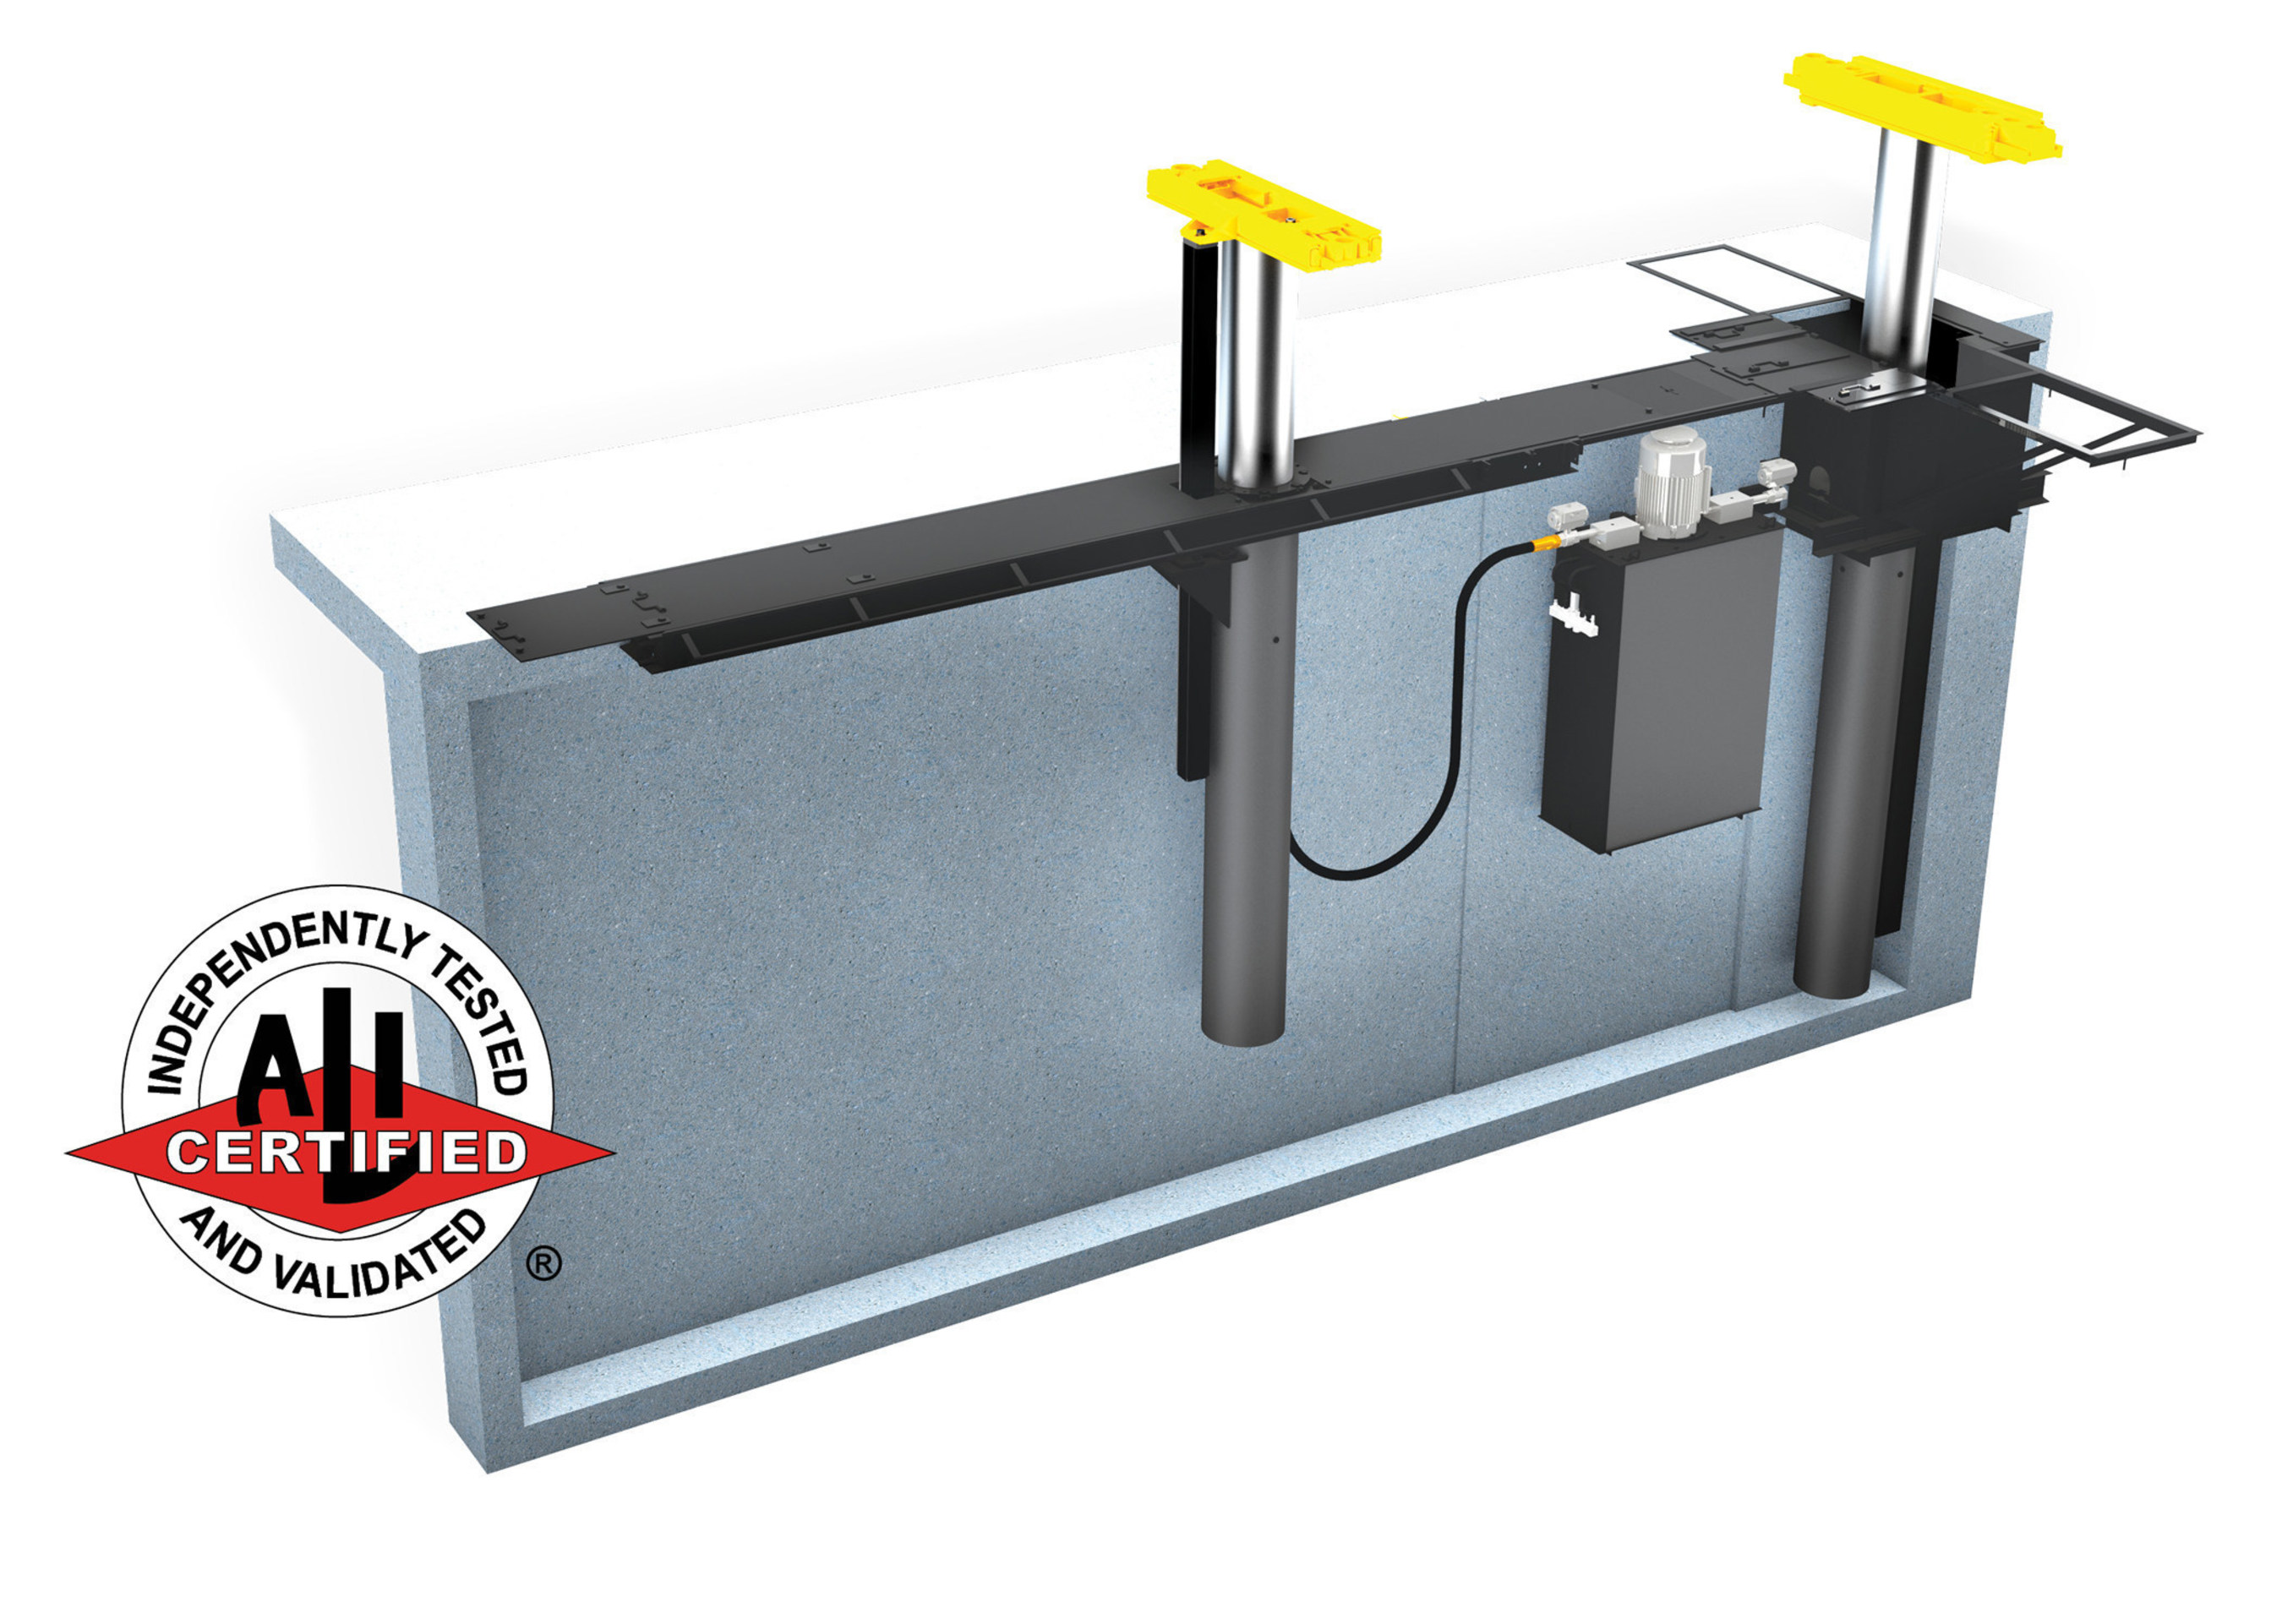 Rotary Lift Updates Heavy-Duty Inground Lifts with New Features and ALI Certification